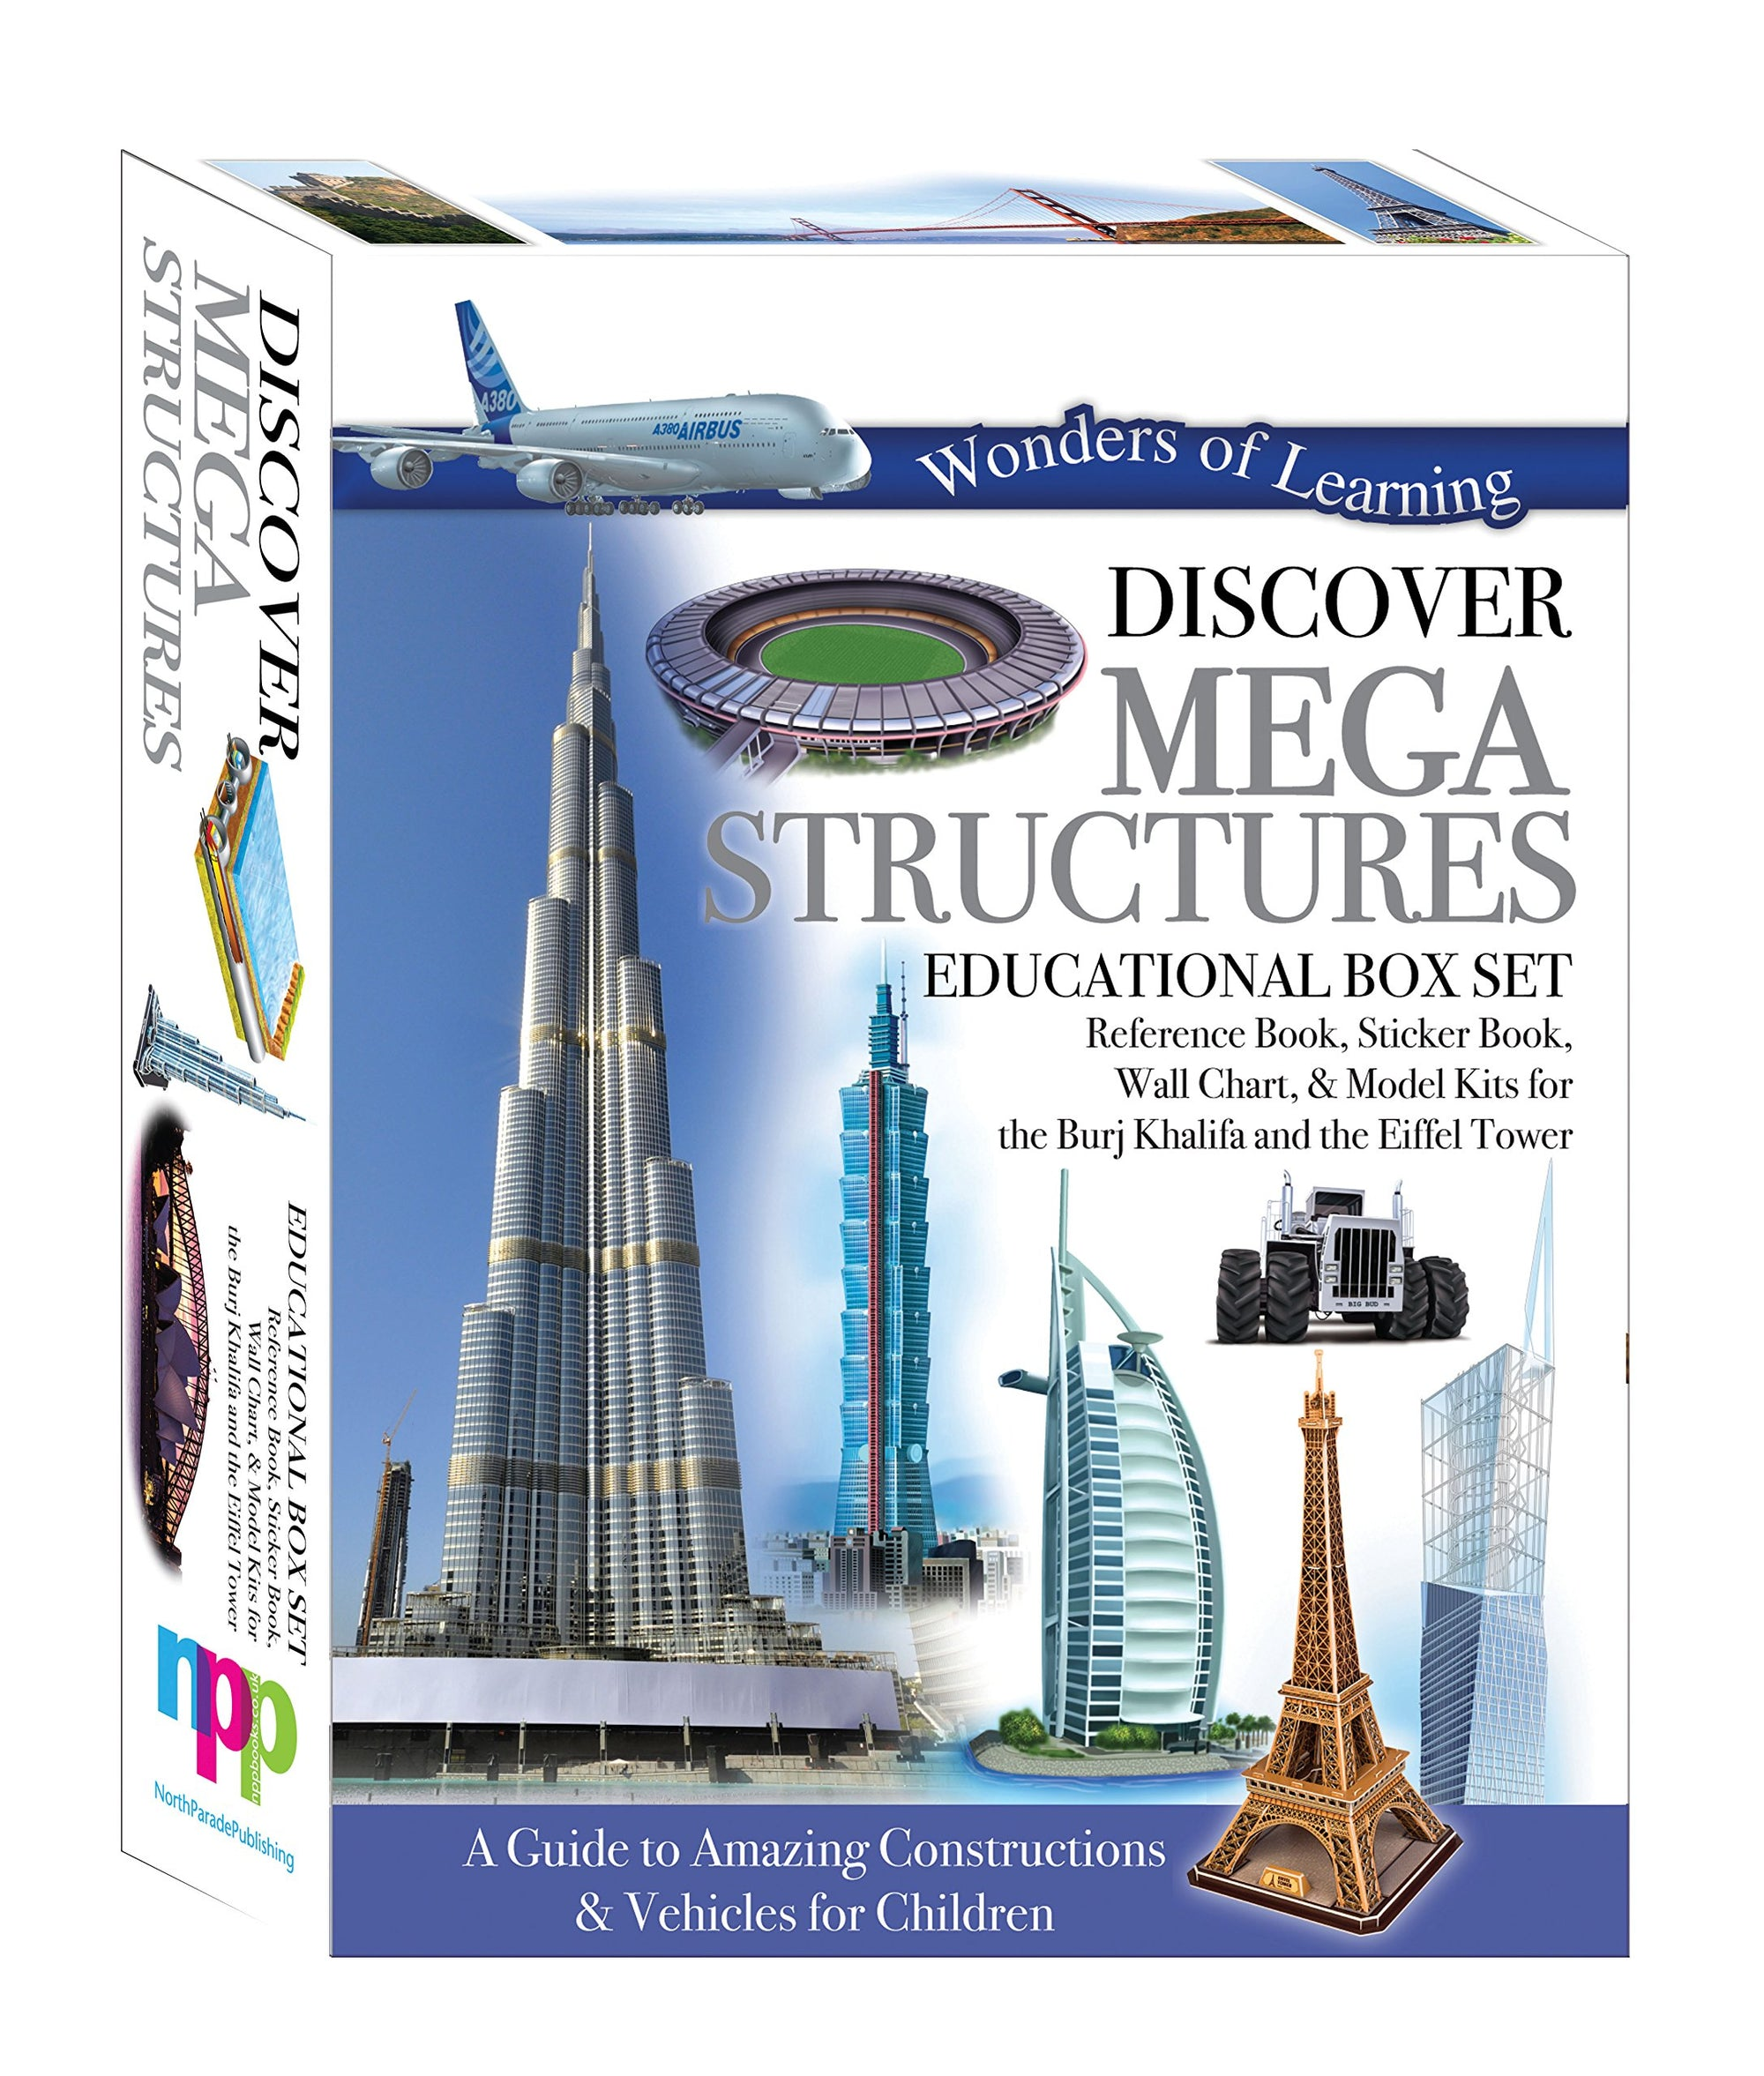 Discover Mega Structures - Educational Box Set (Wonder of Learning)